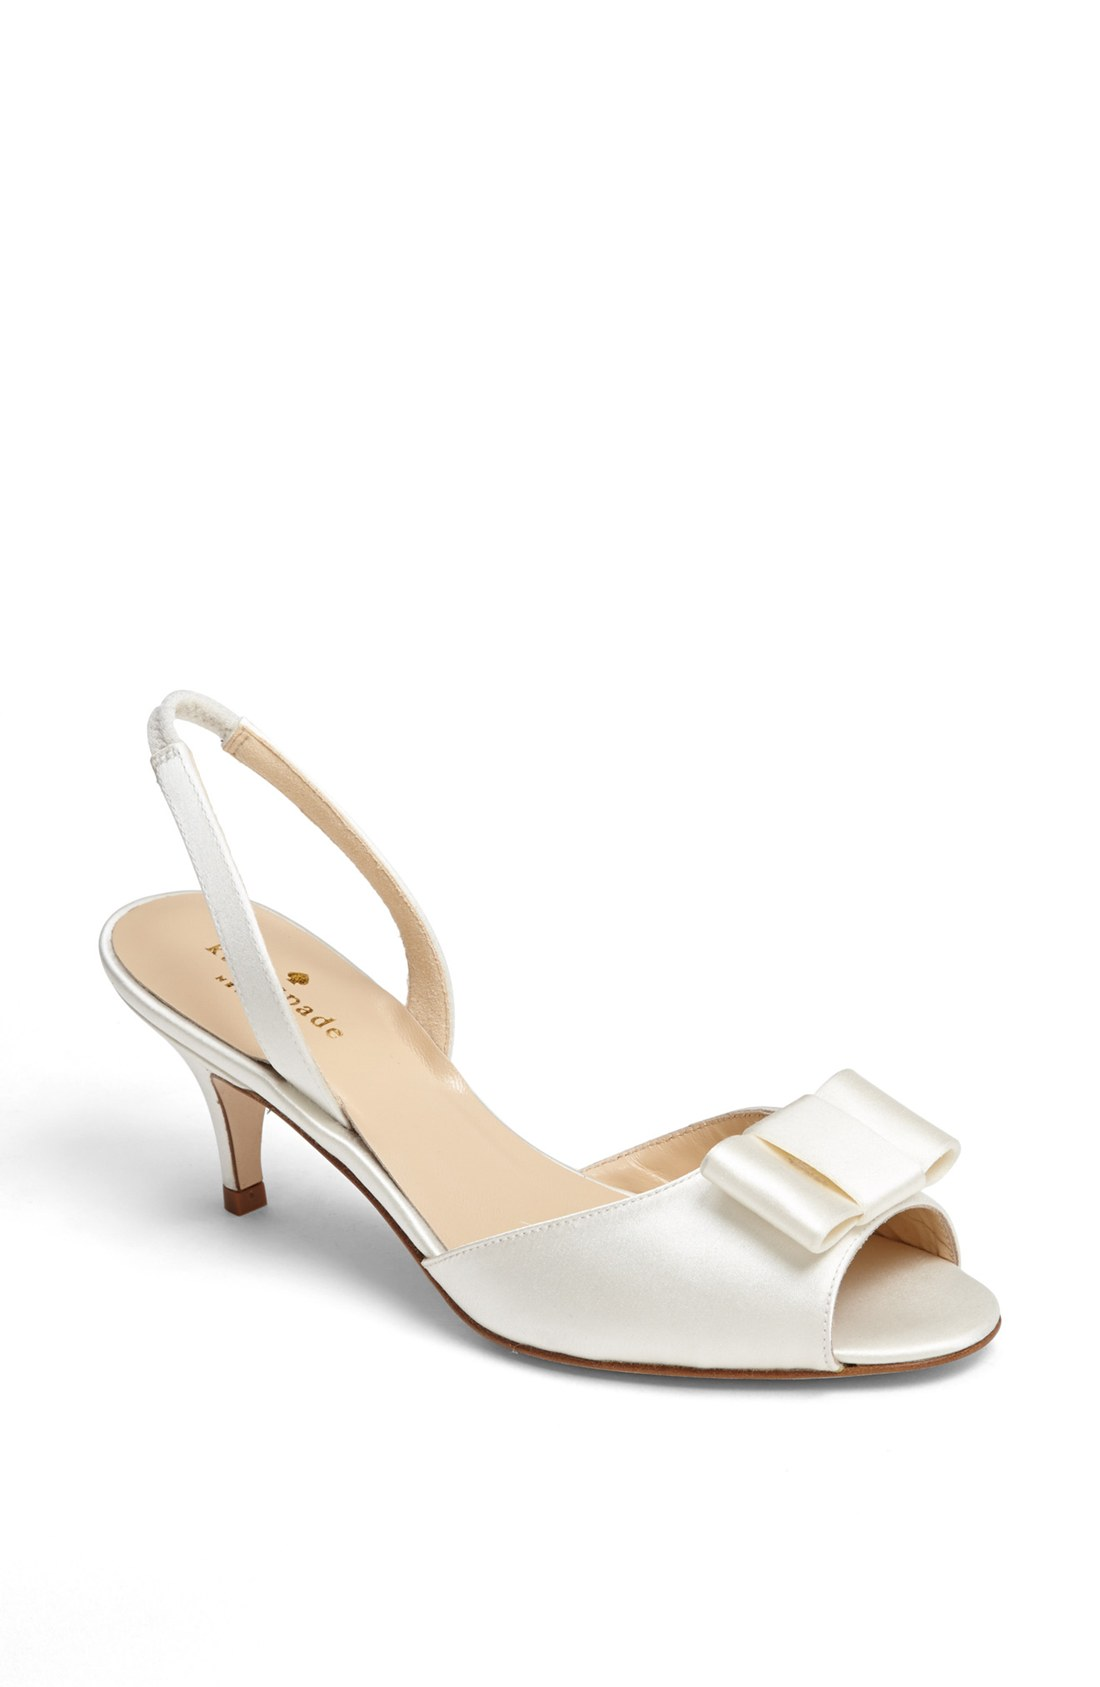 nordstrom wedding shoes kate spade emelia sandal in white ivory satin lyst 6198